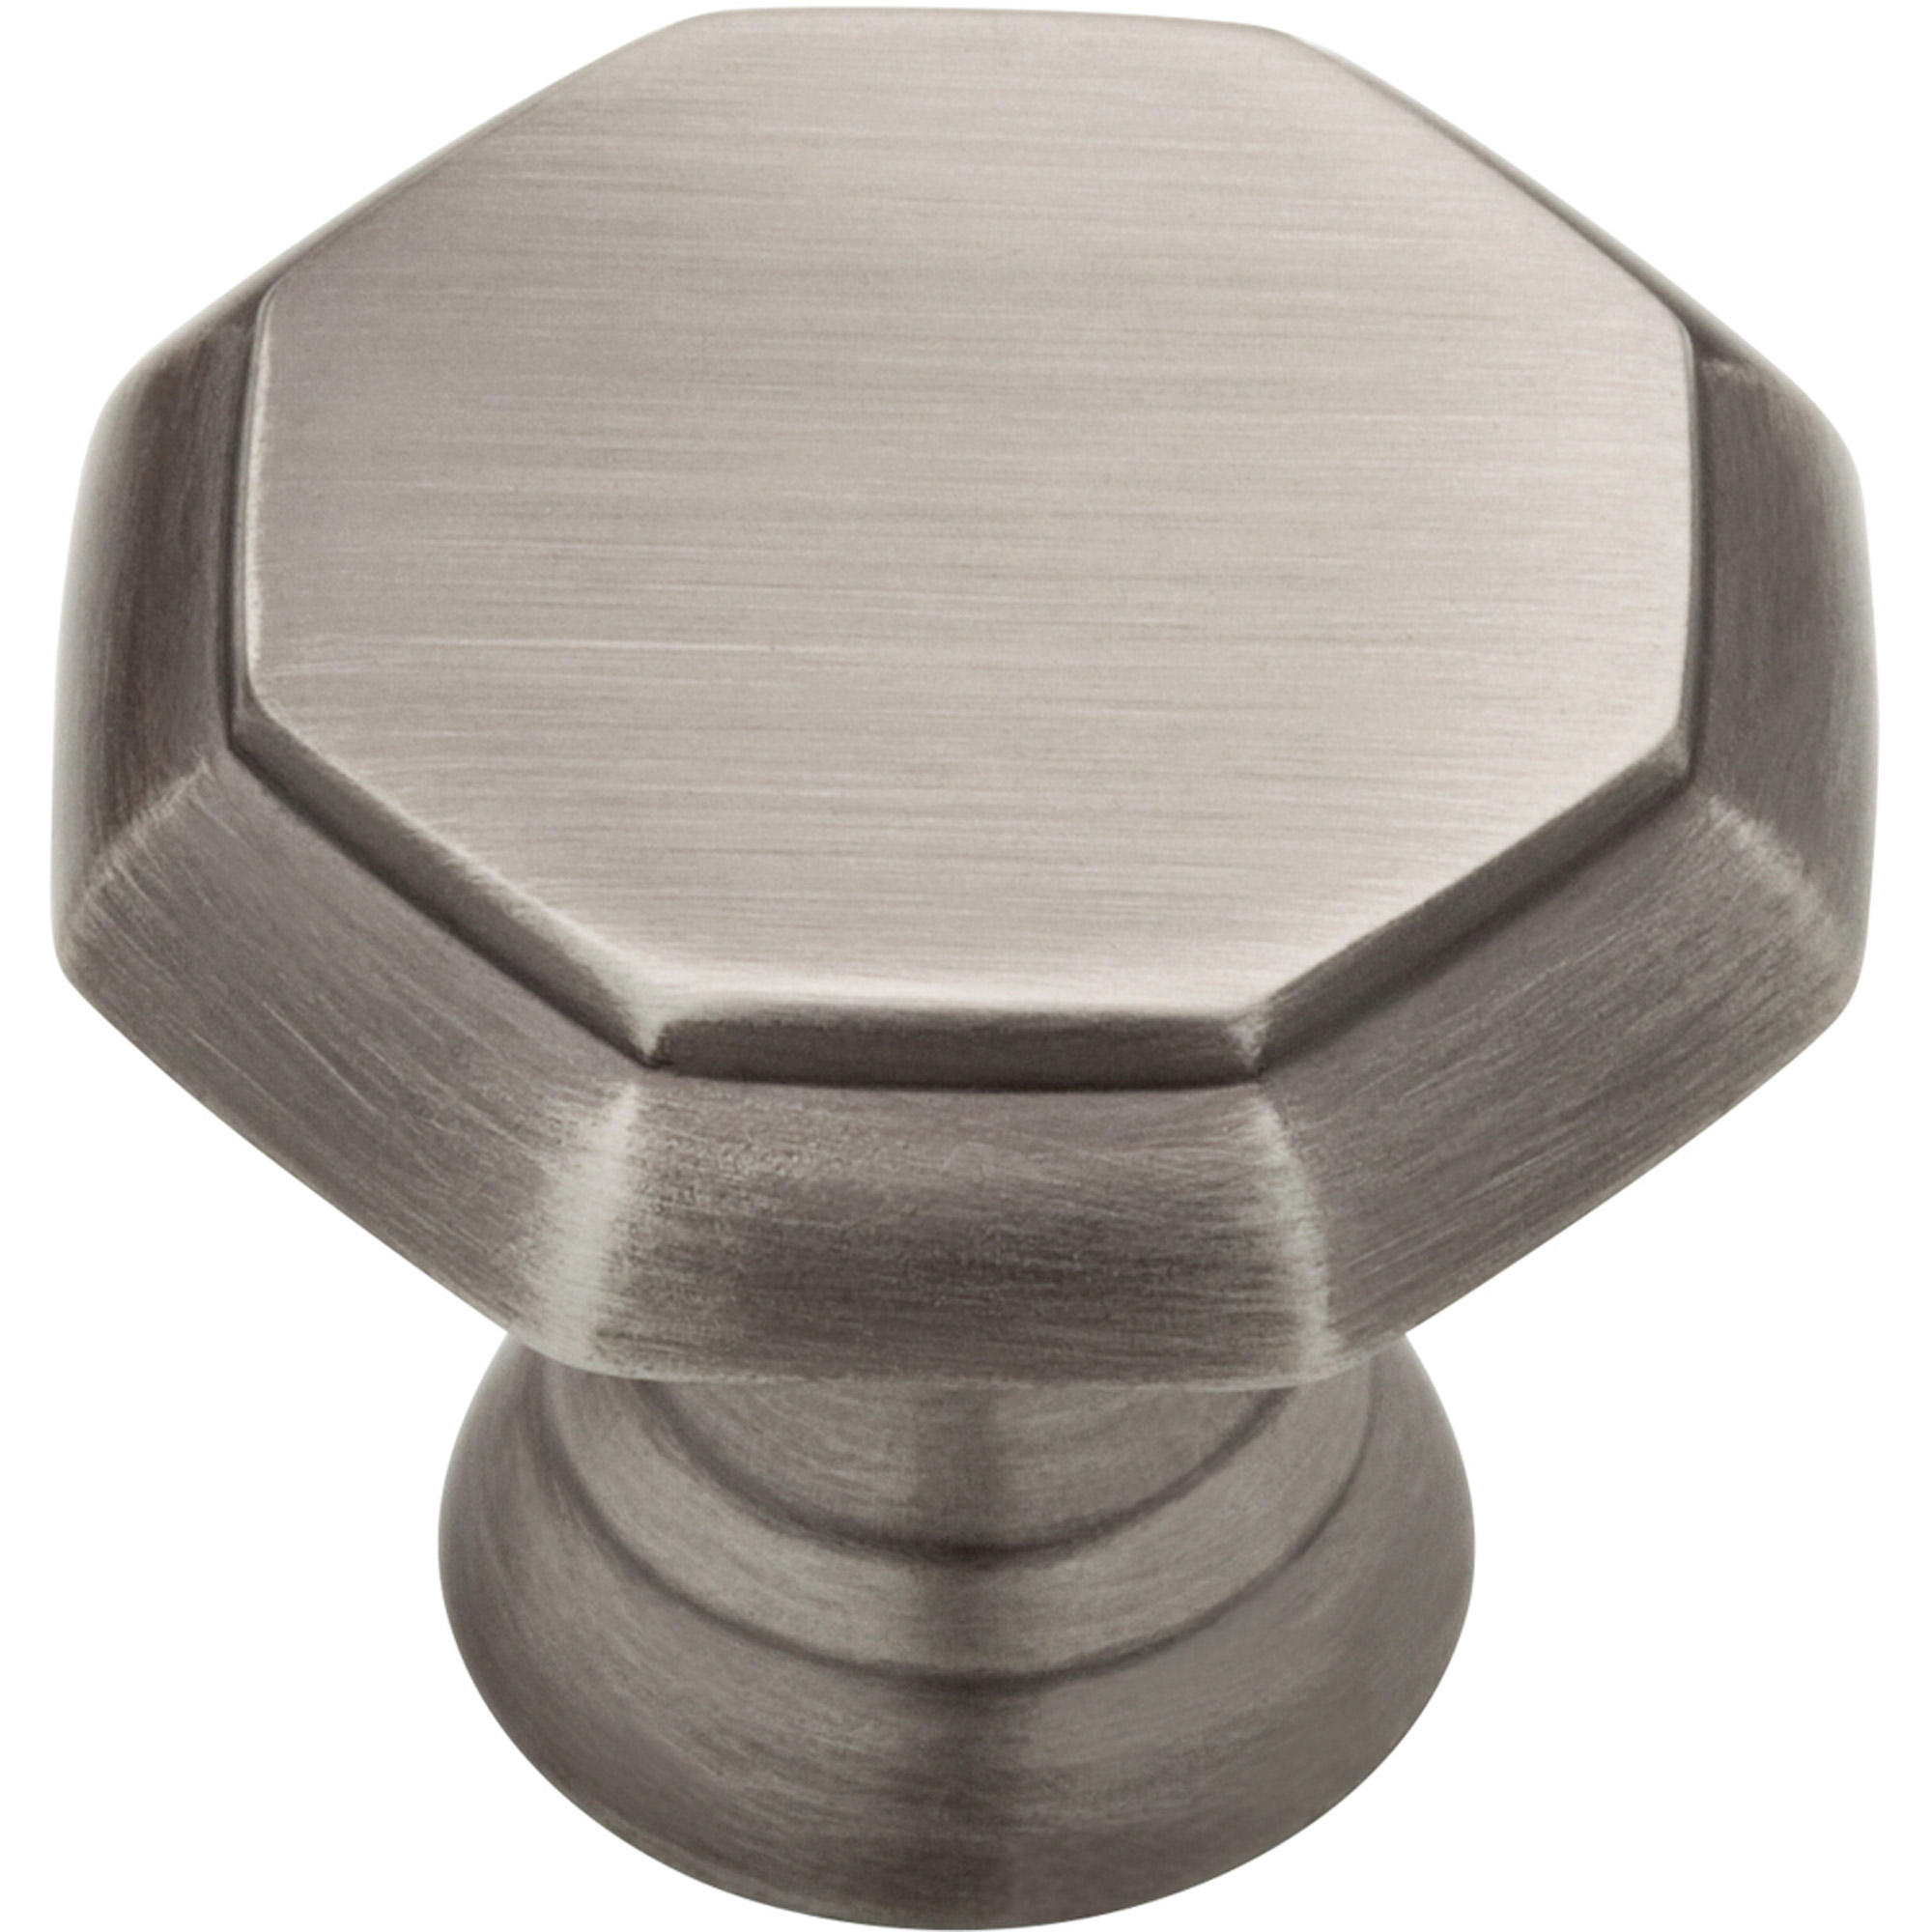 Liberty 30mm Octagon Knob, Available in Multiple Colors